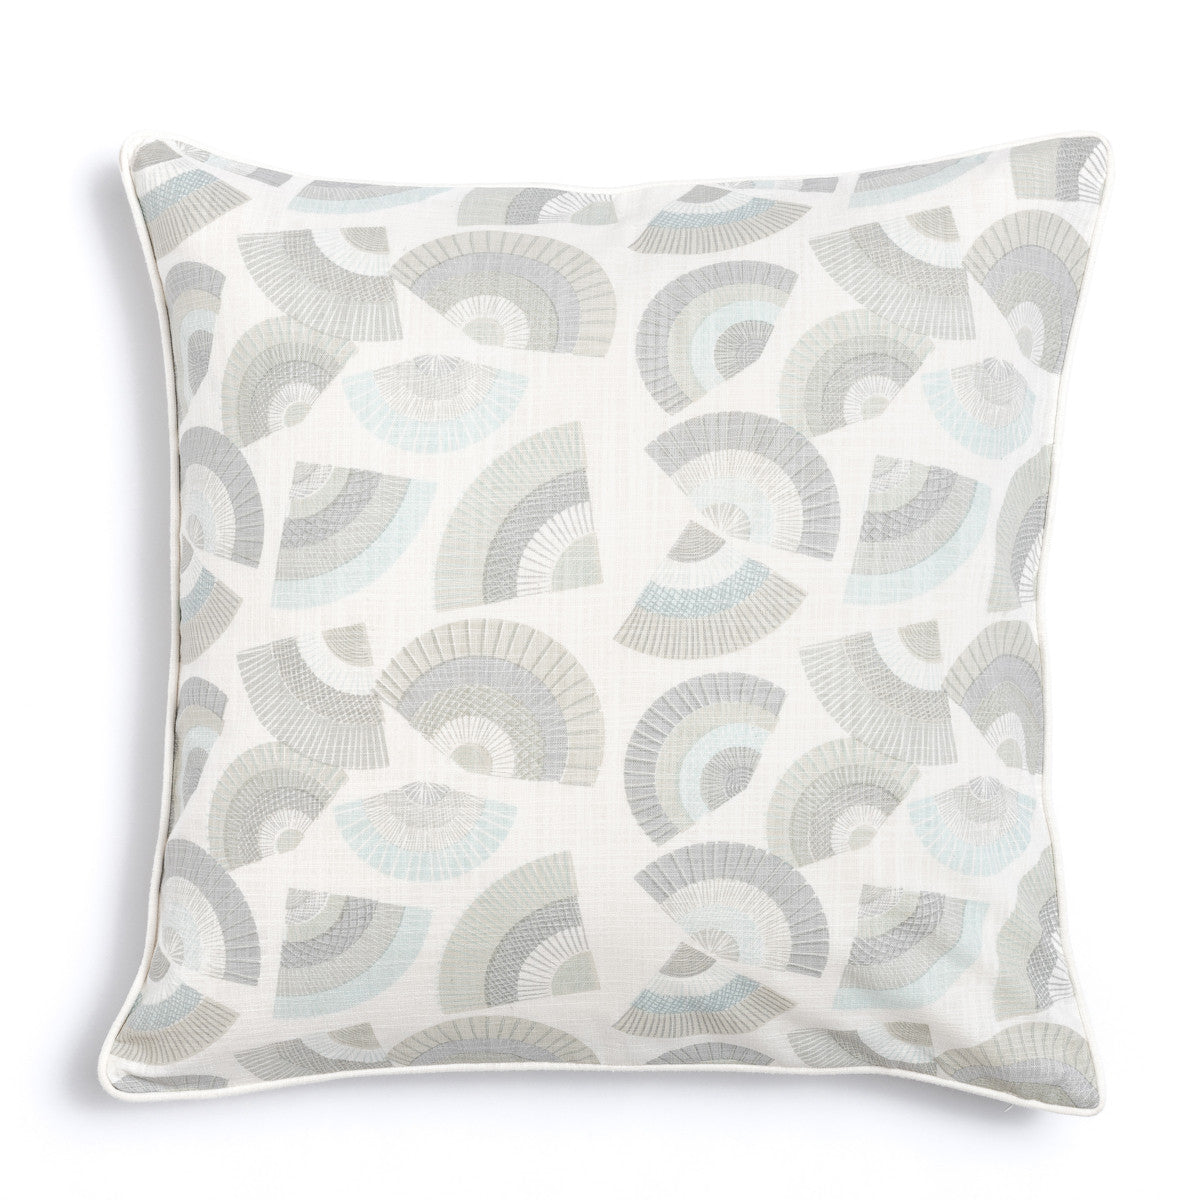 "Pebble 20"" x 20"" Bamboo + Fans Reversible Accent Pillow Cover"